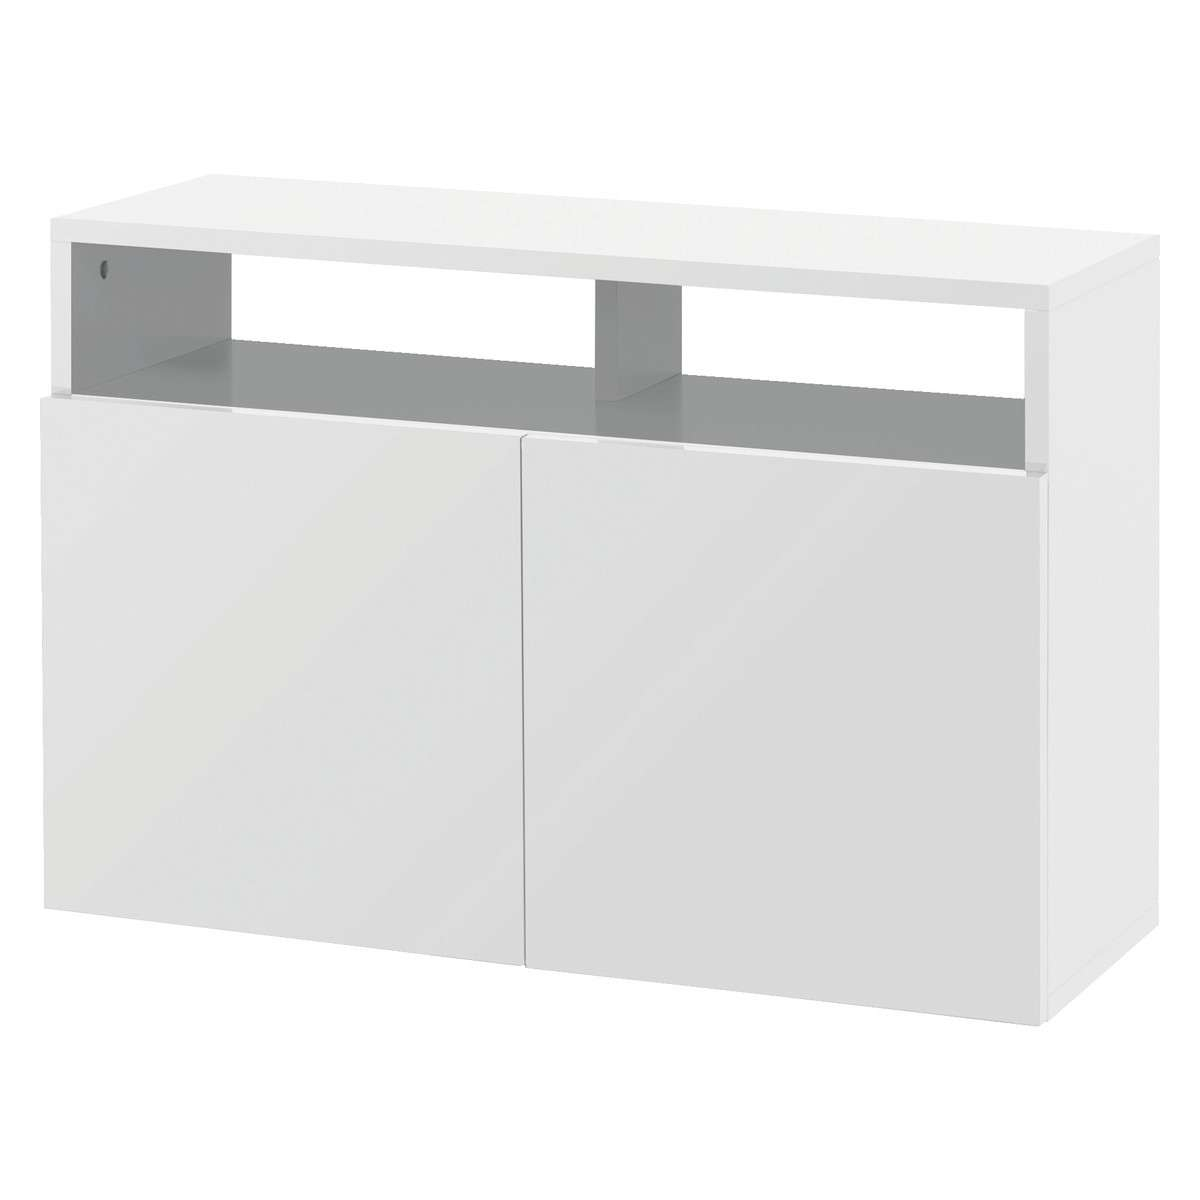 Kubrik White High Gloss Small Sideboard | Buy Now At Habitat Uk With High Gloss Sideboards (View 7 of 20)